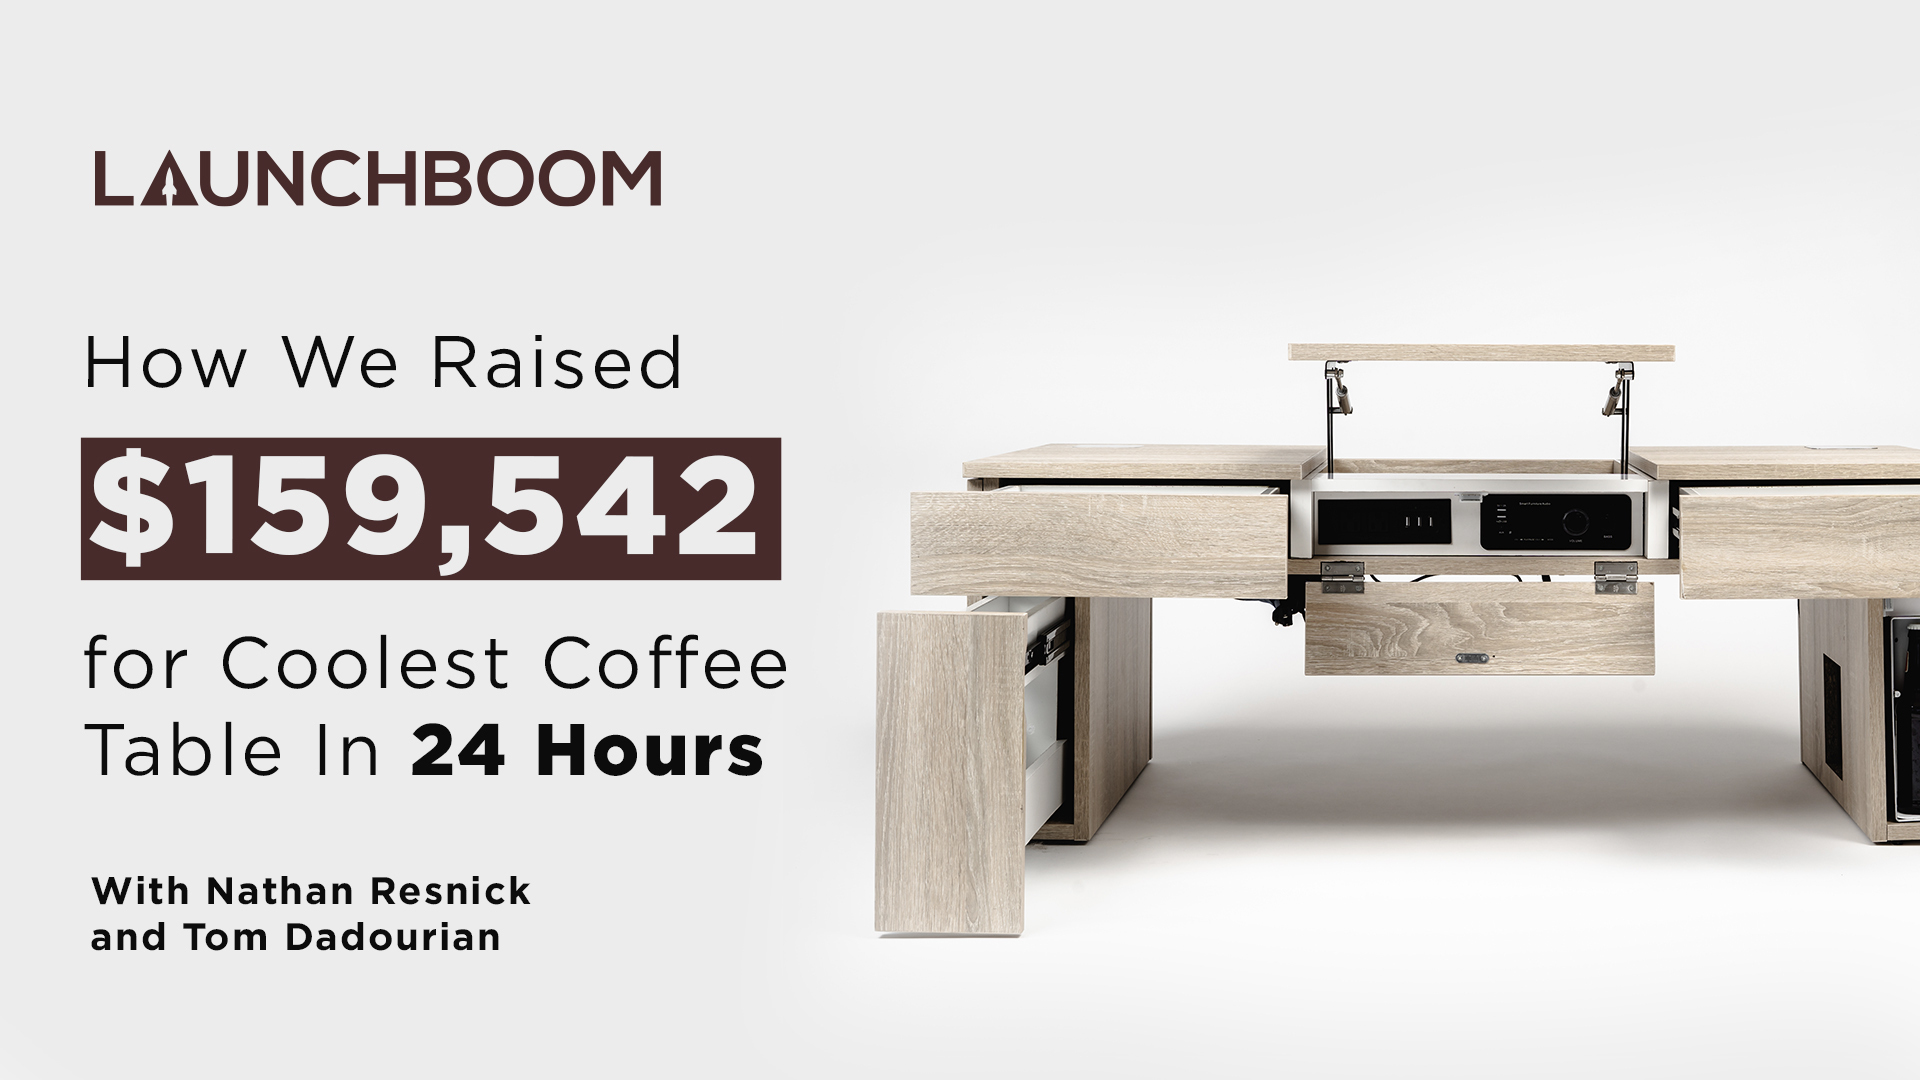 How We Raised $159,542 for Coolest Coffee Table In 24 Hours